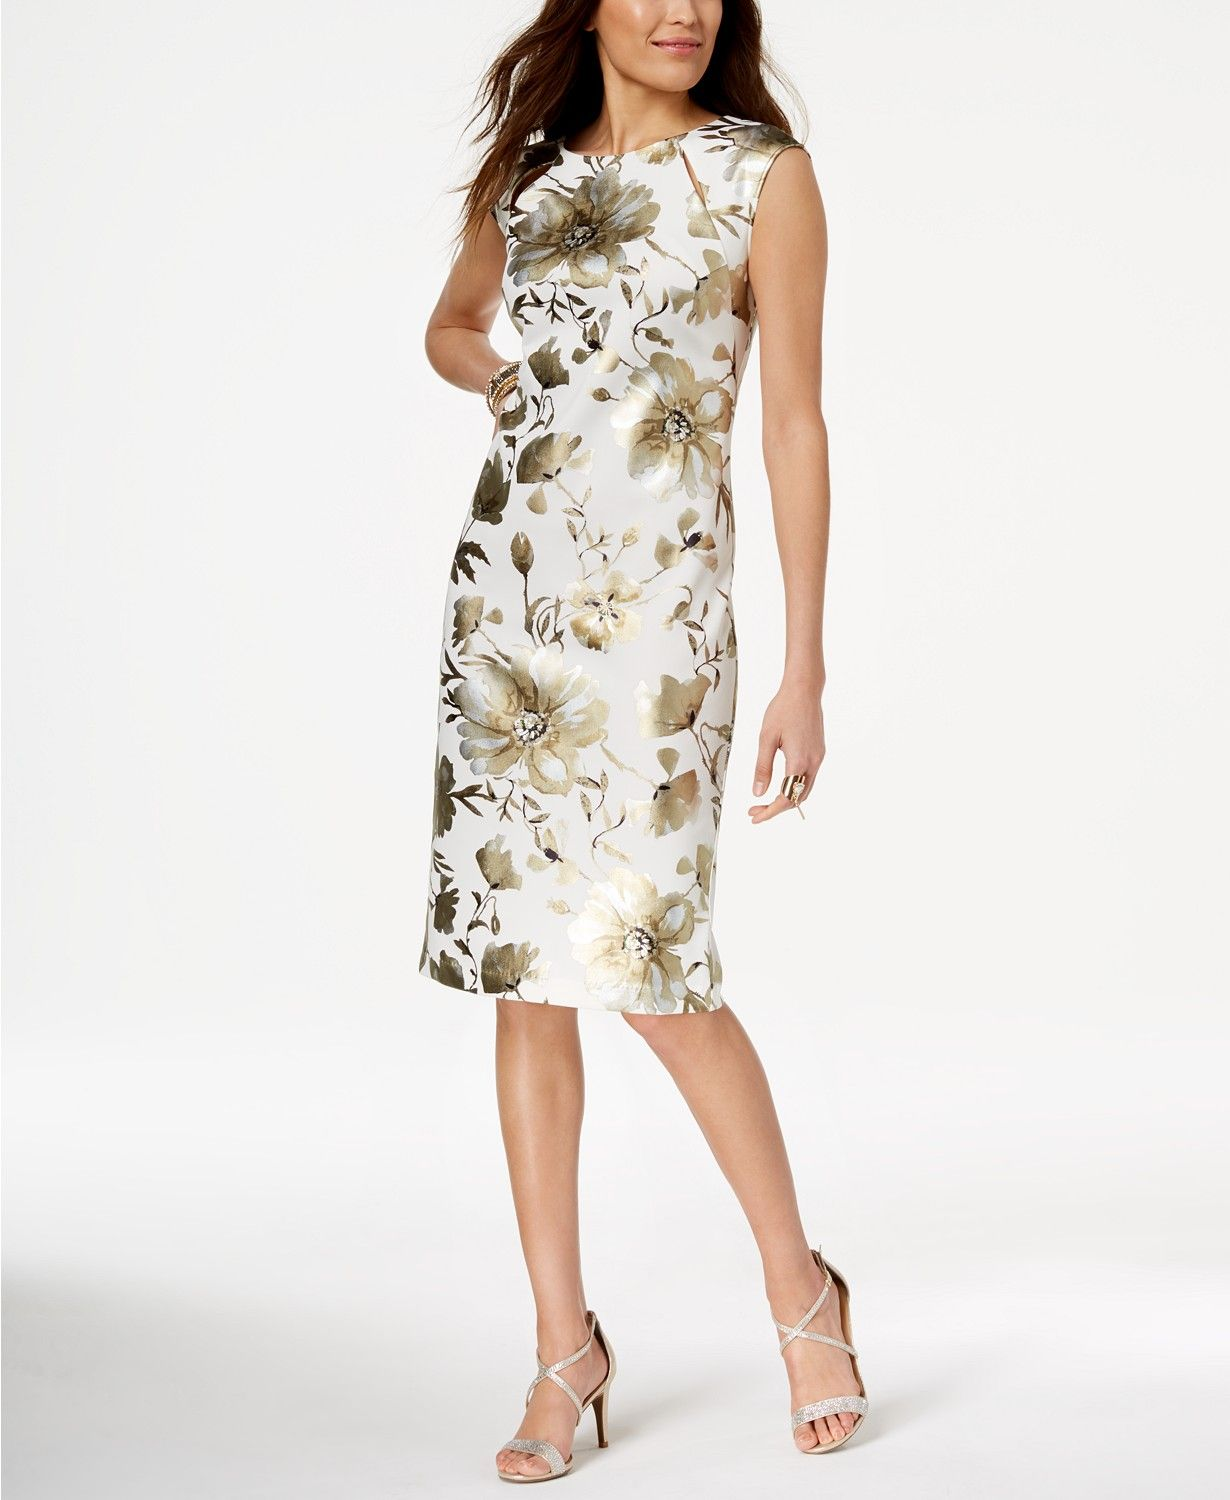 What To Wear To A Summer Wedding Printed Sheath Dresses Dresses Dresses To Wear To A Wedding [ 1500 x 1230 Pixel ]